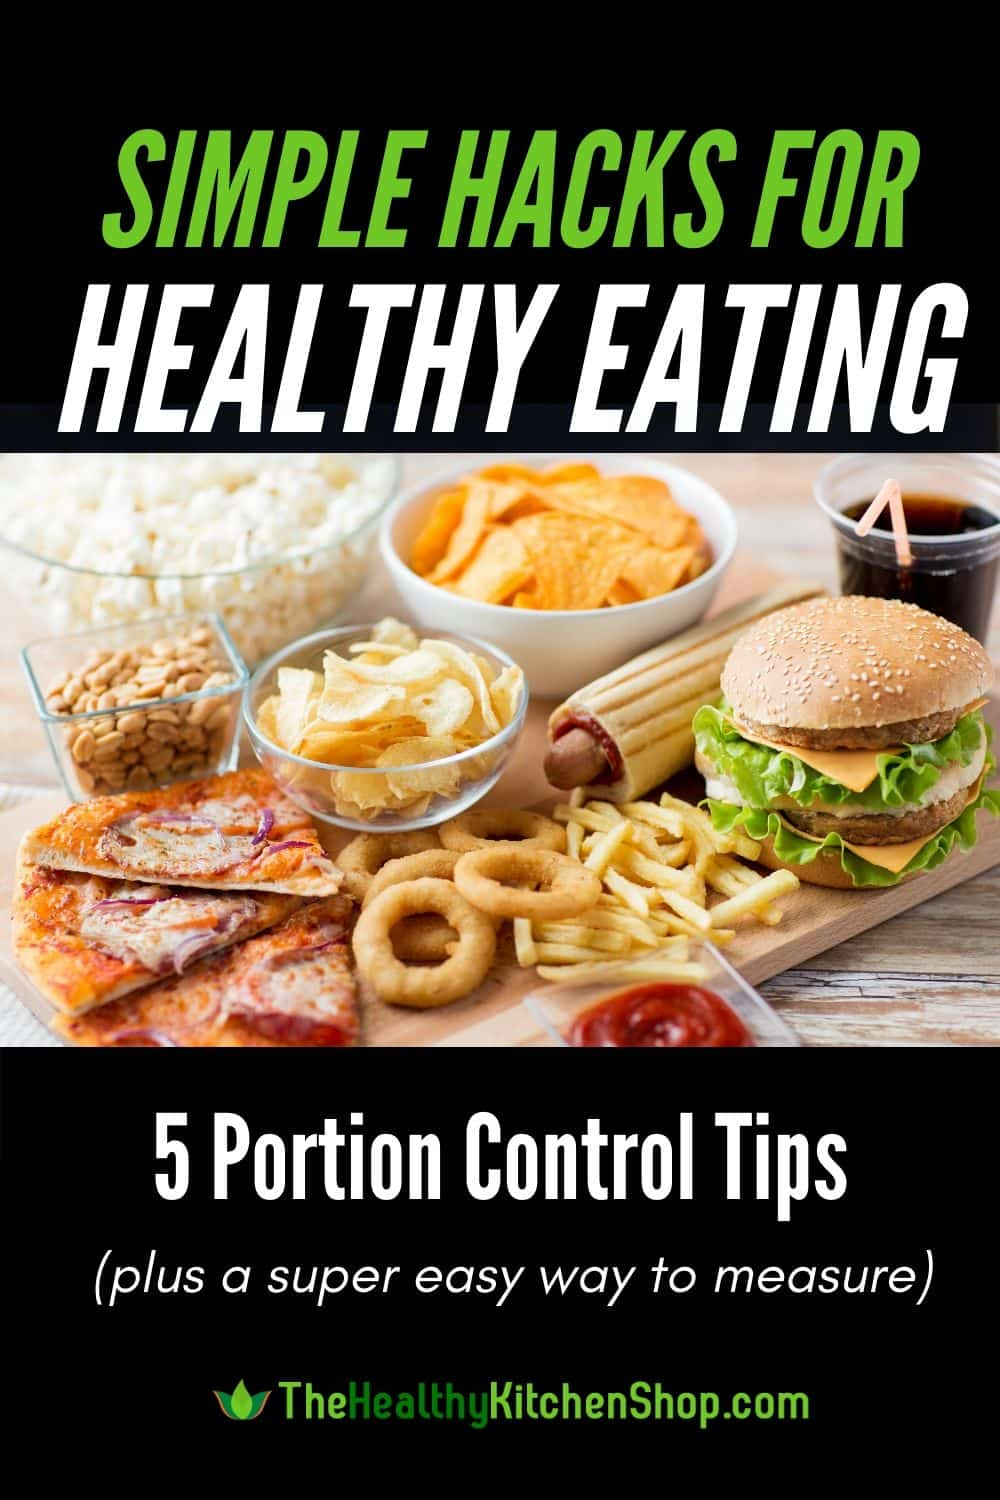 Simple Hacks for Healthy Eating - 5 Portion Control Tips